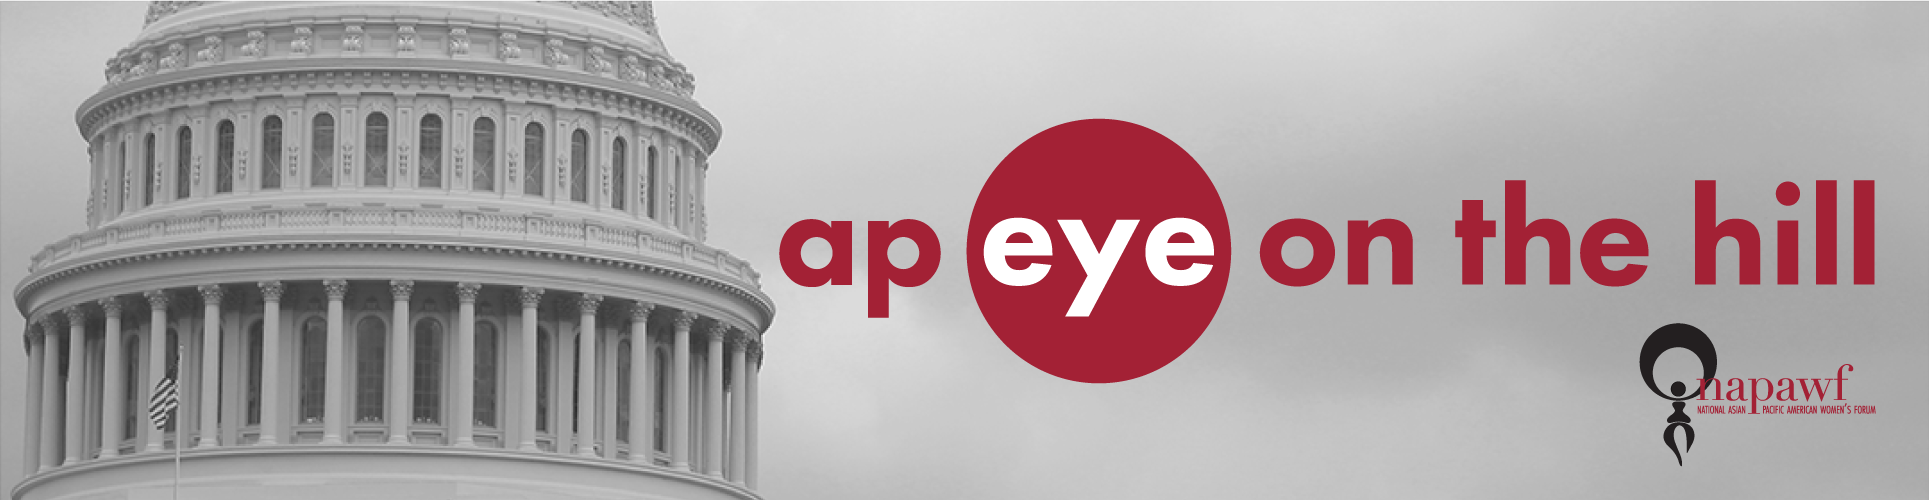 Ap eye on the hill